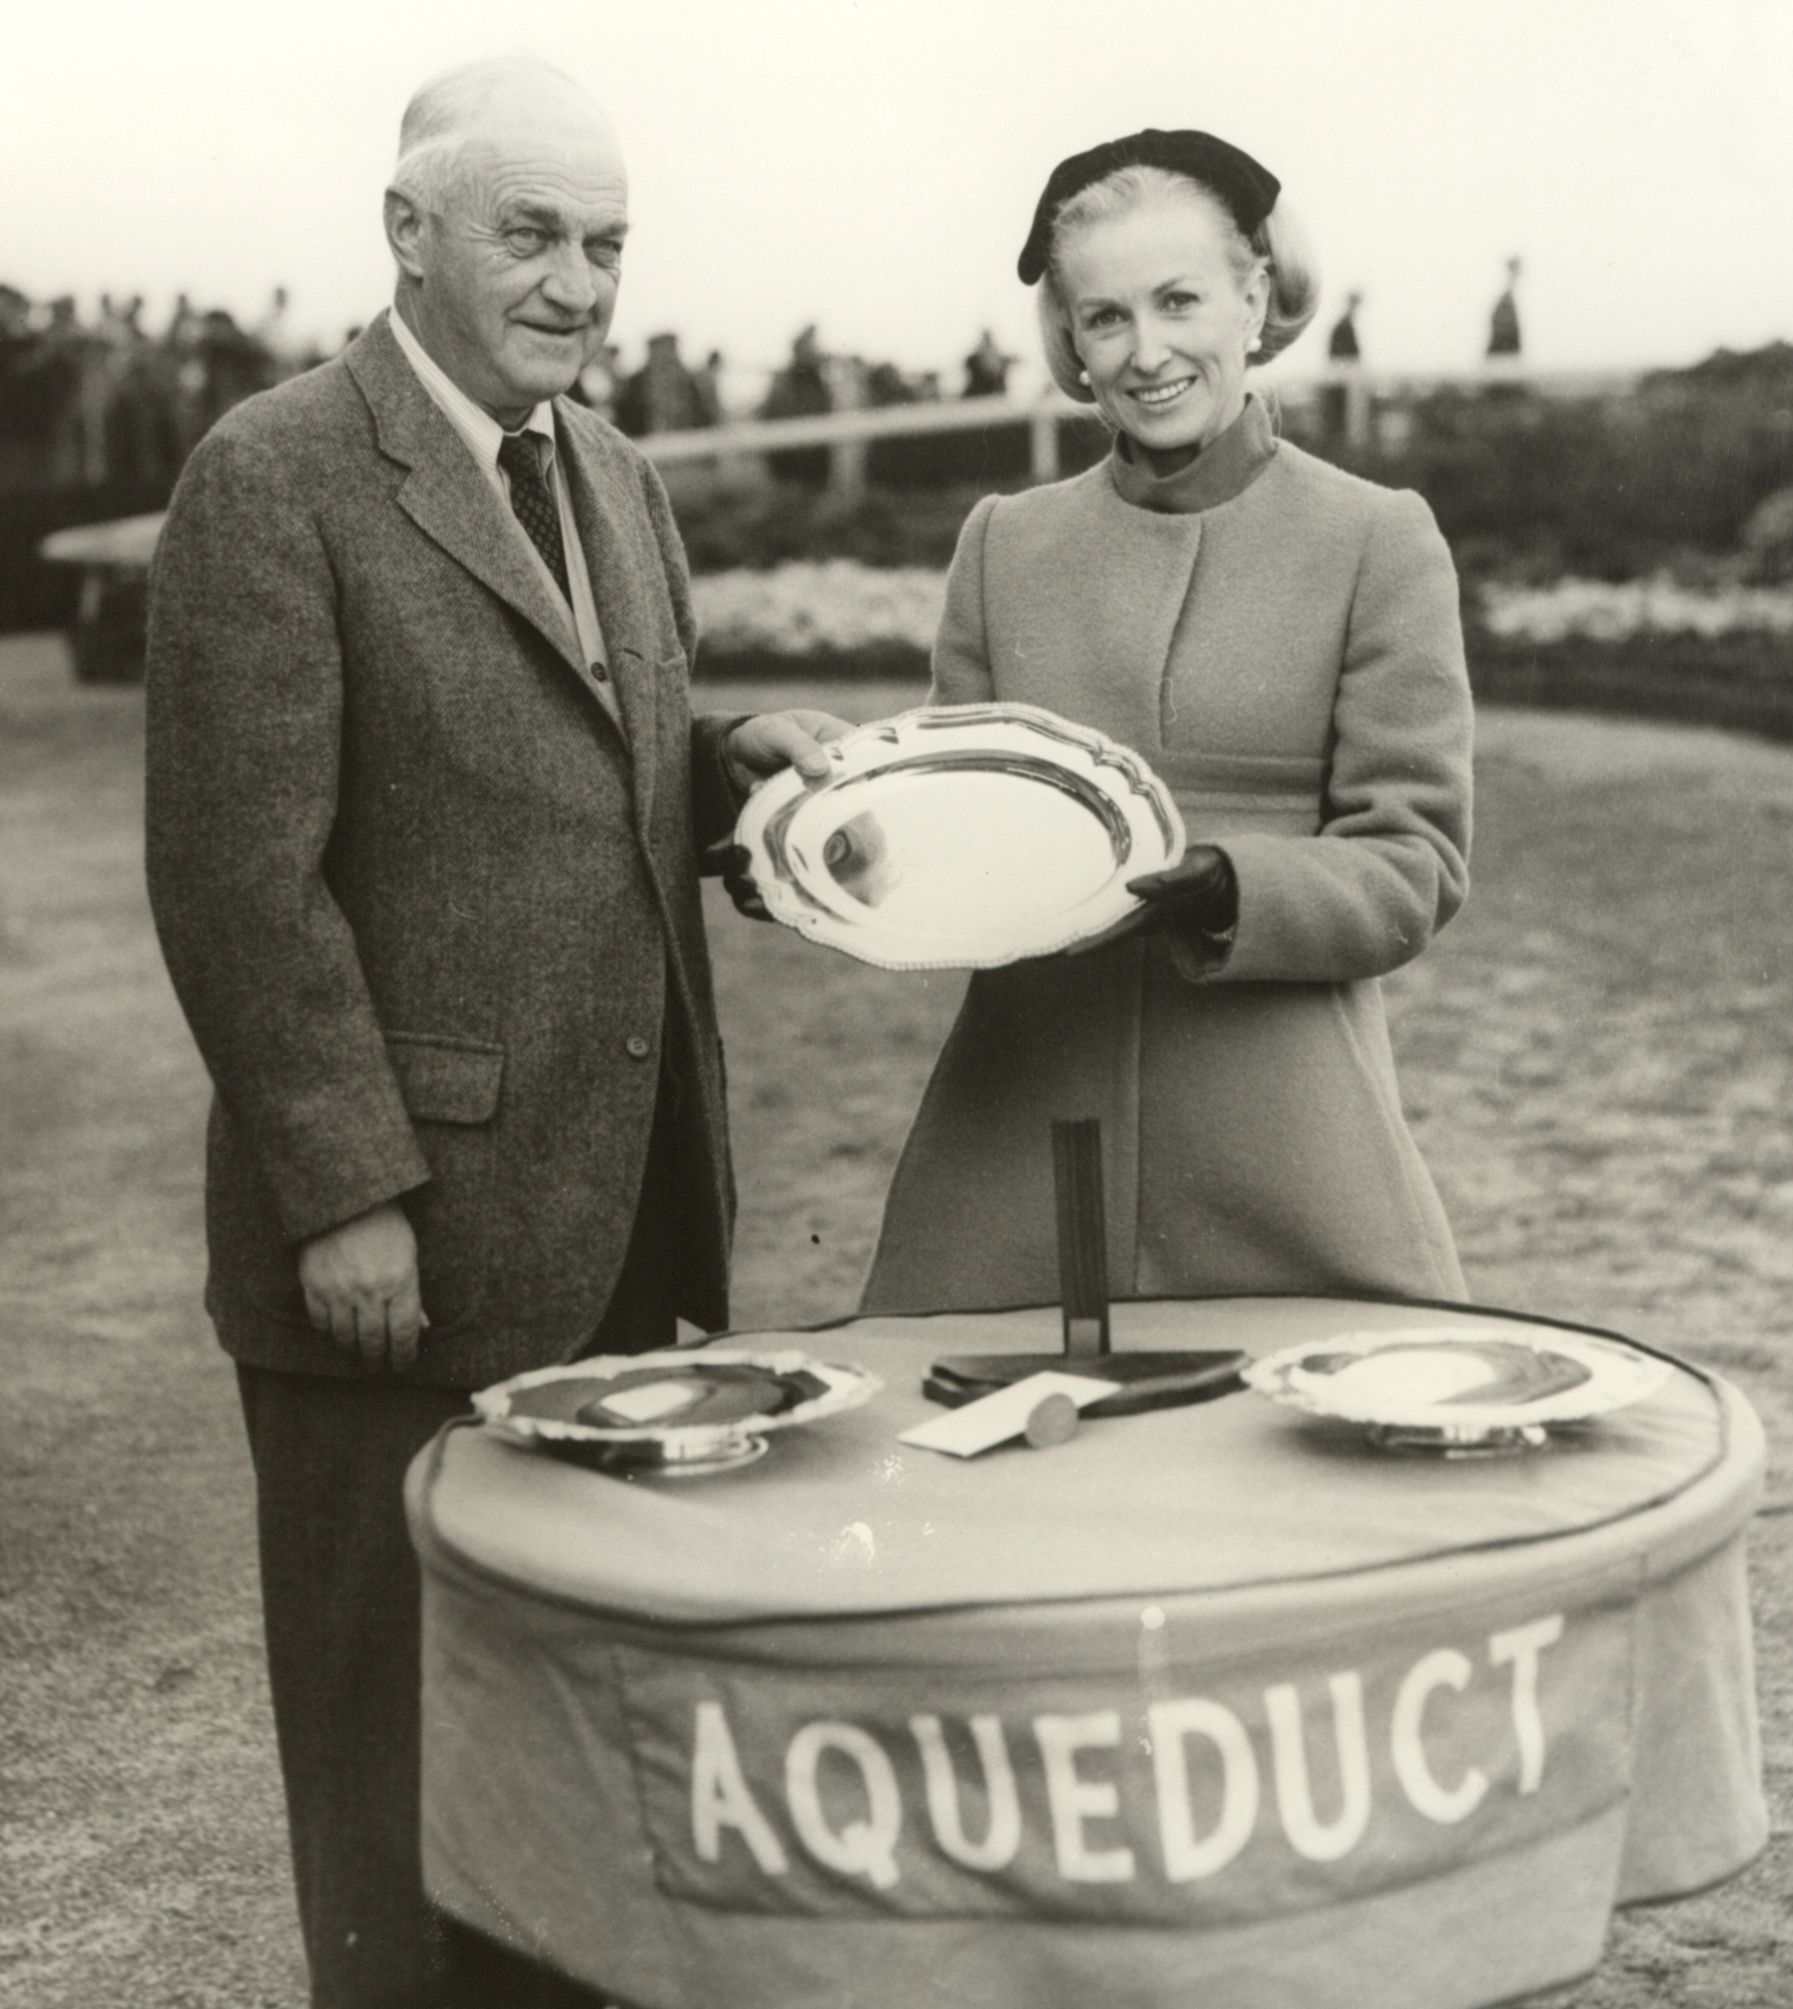 Marylou Whitney and John M. Gaver at Aqueduct, 1967 (Keeneland Library Thoroughbred Times Collection)